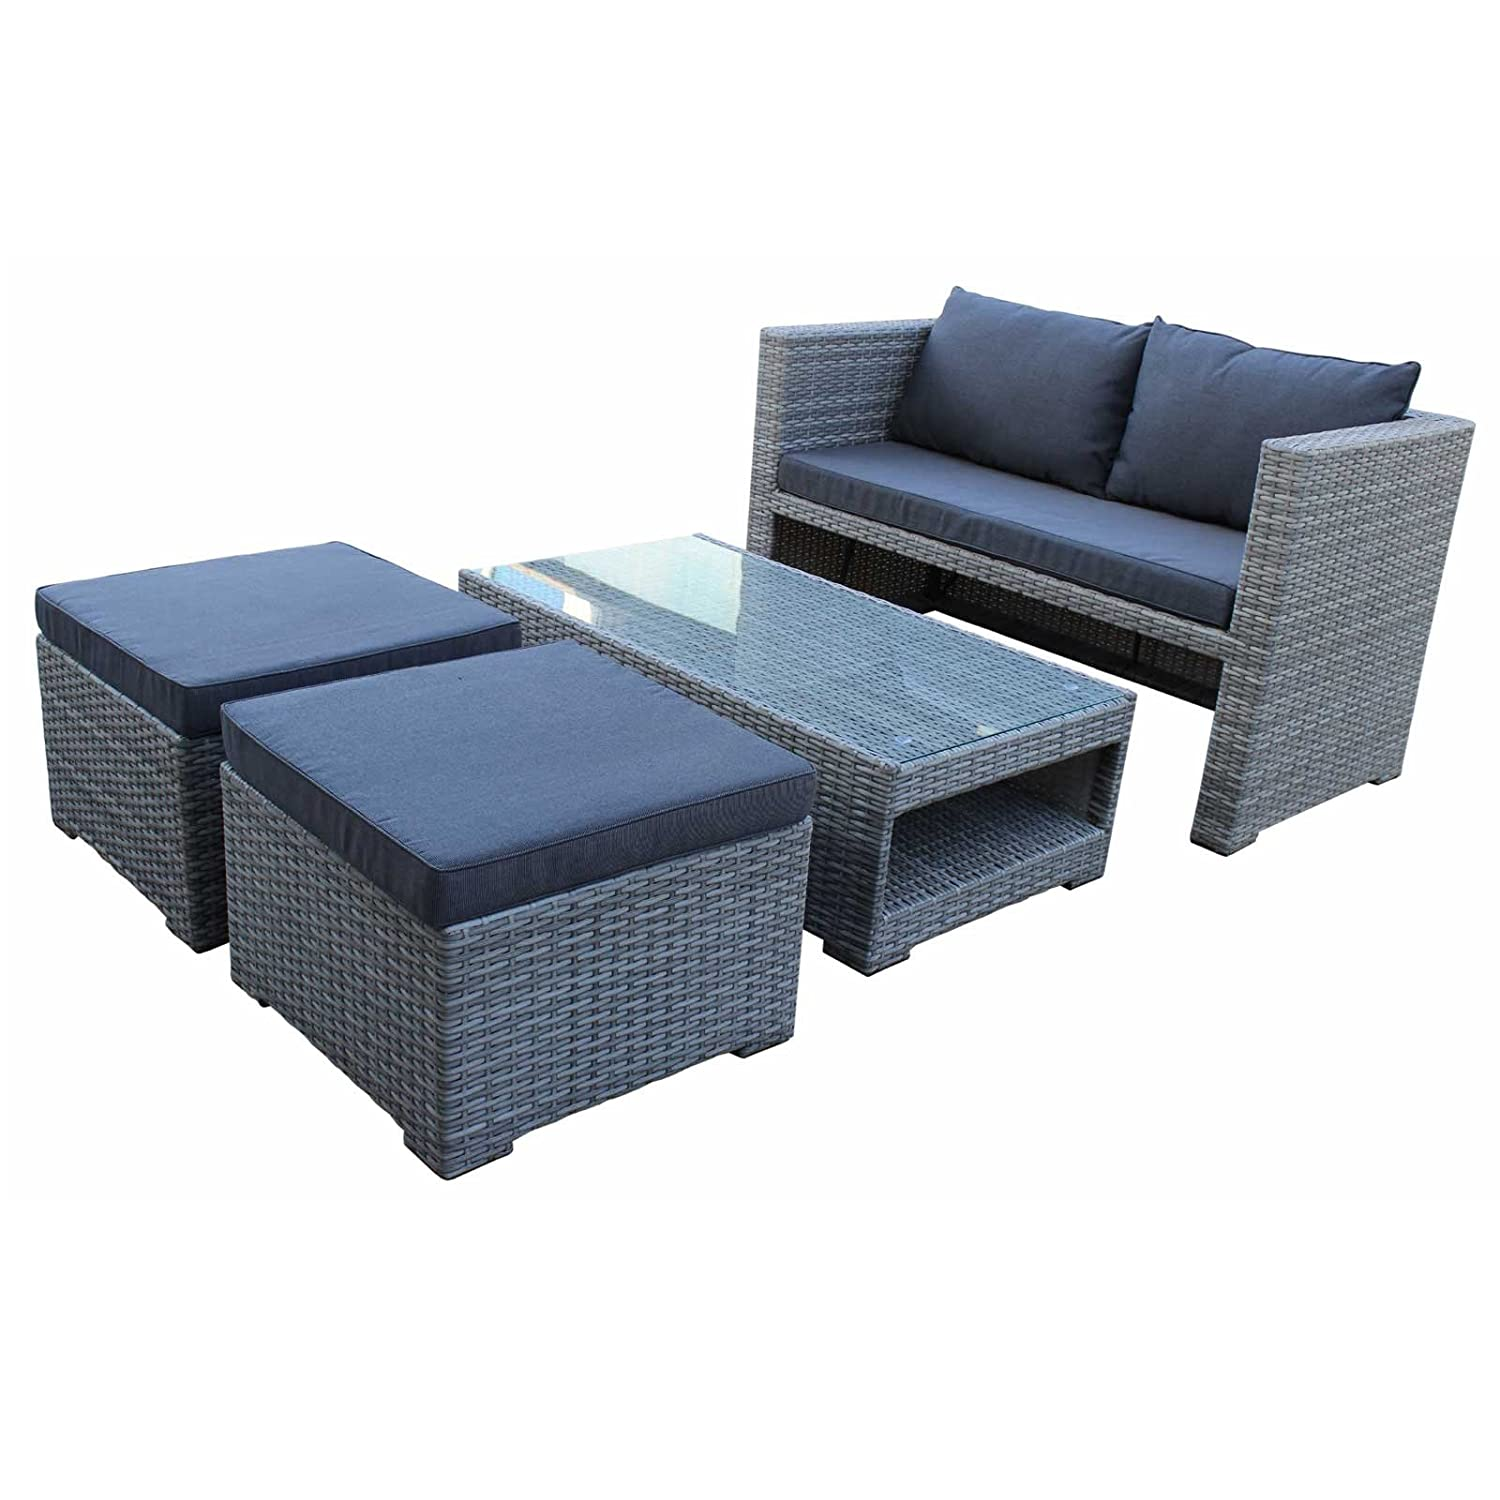 lounge set fiorino hochwertiges polyrattan farbe grau bicolor wetterfest g nstig online kaufen. Black Bedroom Furniture Sets. Home Design Ideas